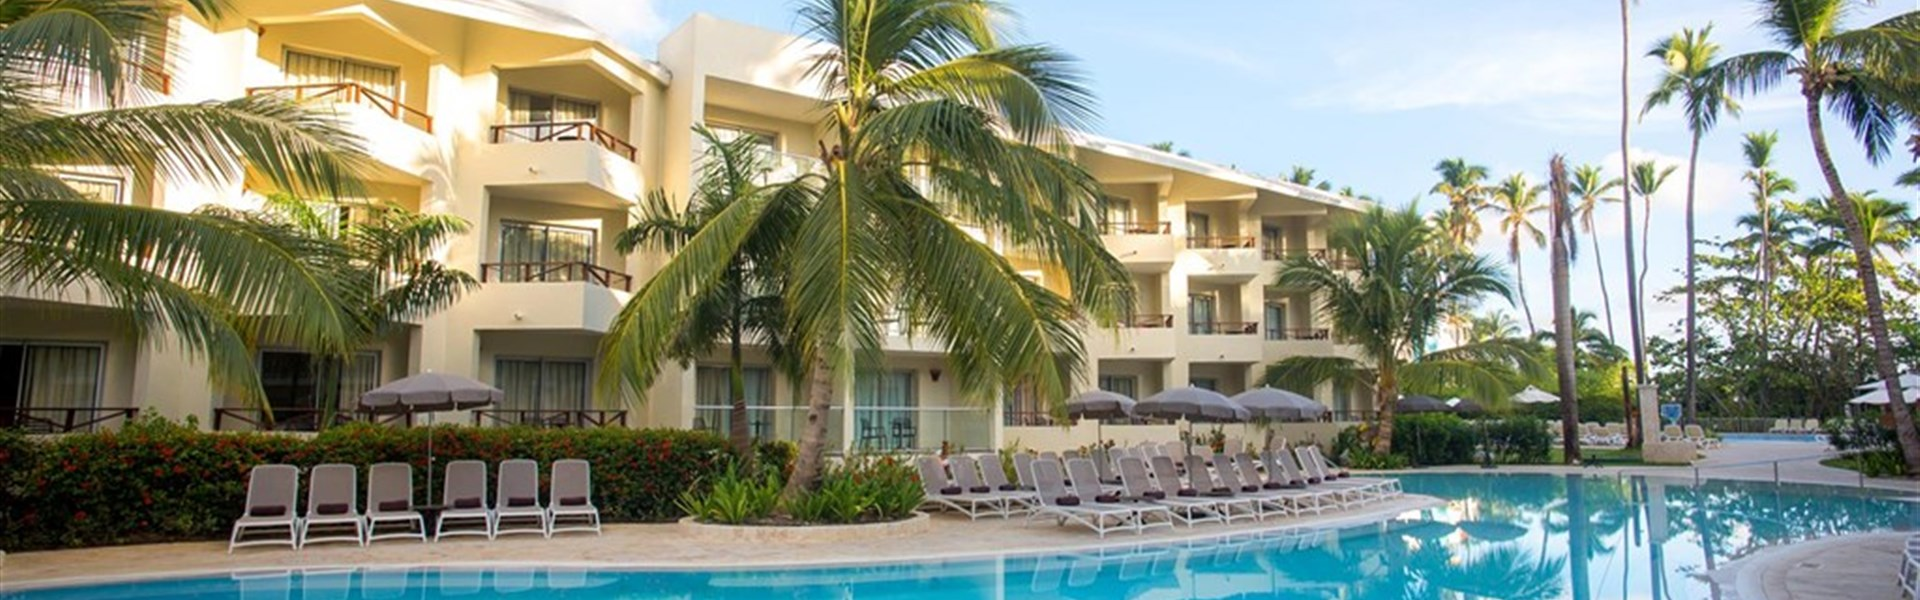 Marco Polo - Impressive Resorts and Spa Punta Cana -